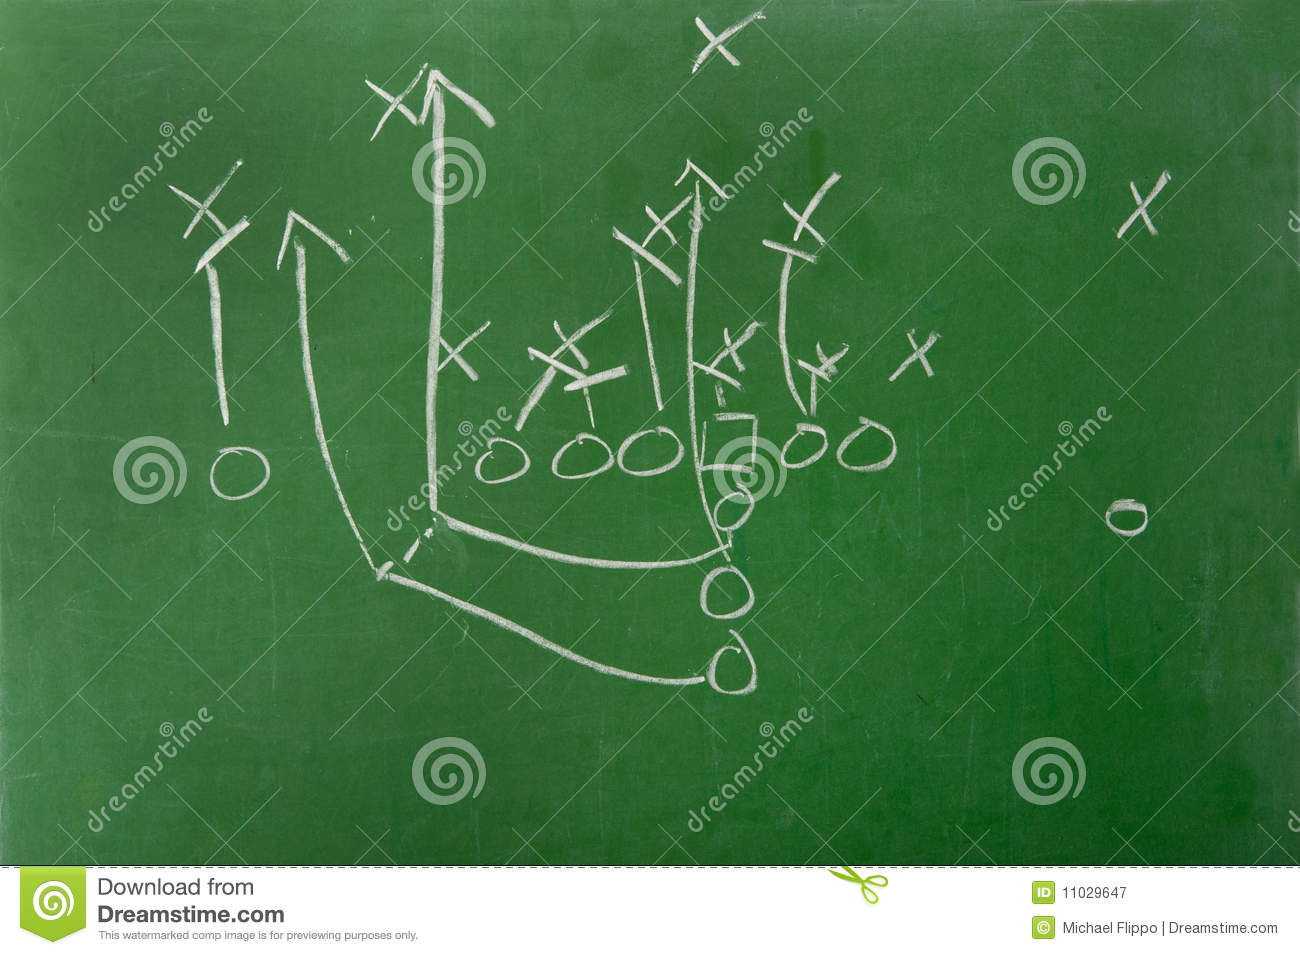 Fooball Play Diagram On Chalkboard Royalty Free Stock Photography ...